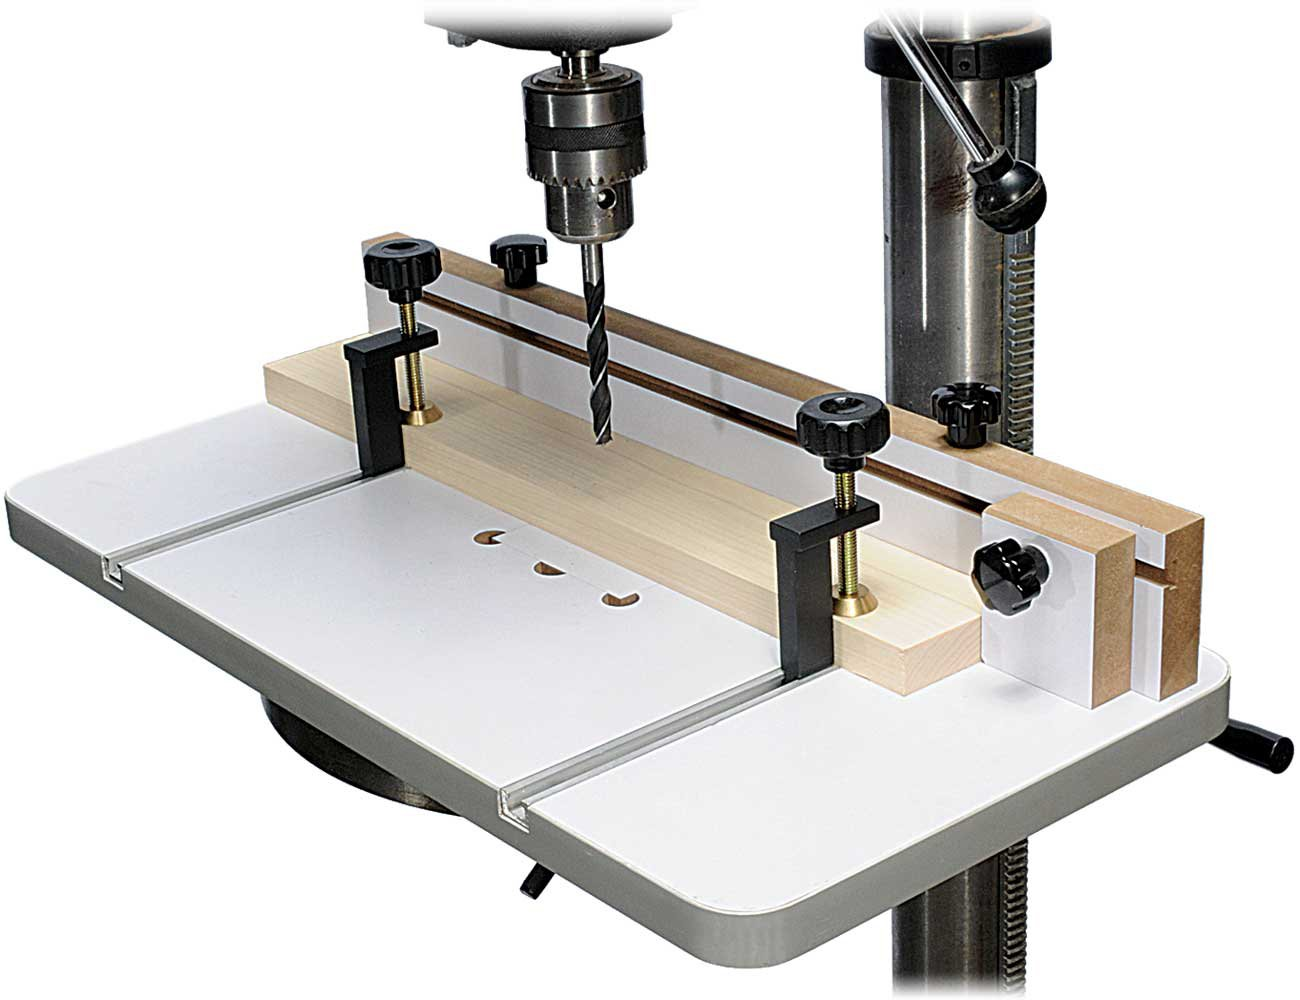 MLCS 2326 Drill Press Table and Fence with T-Track Hold Downs Included